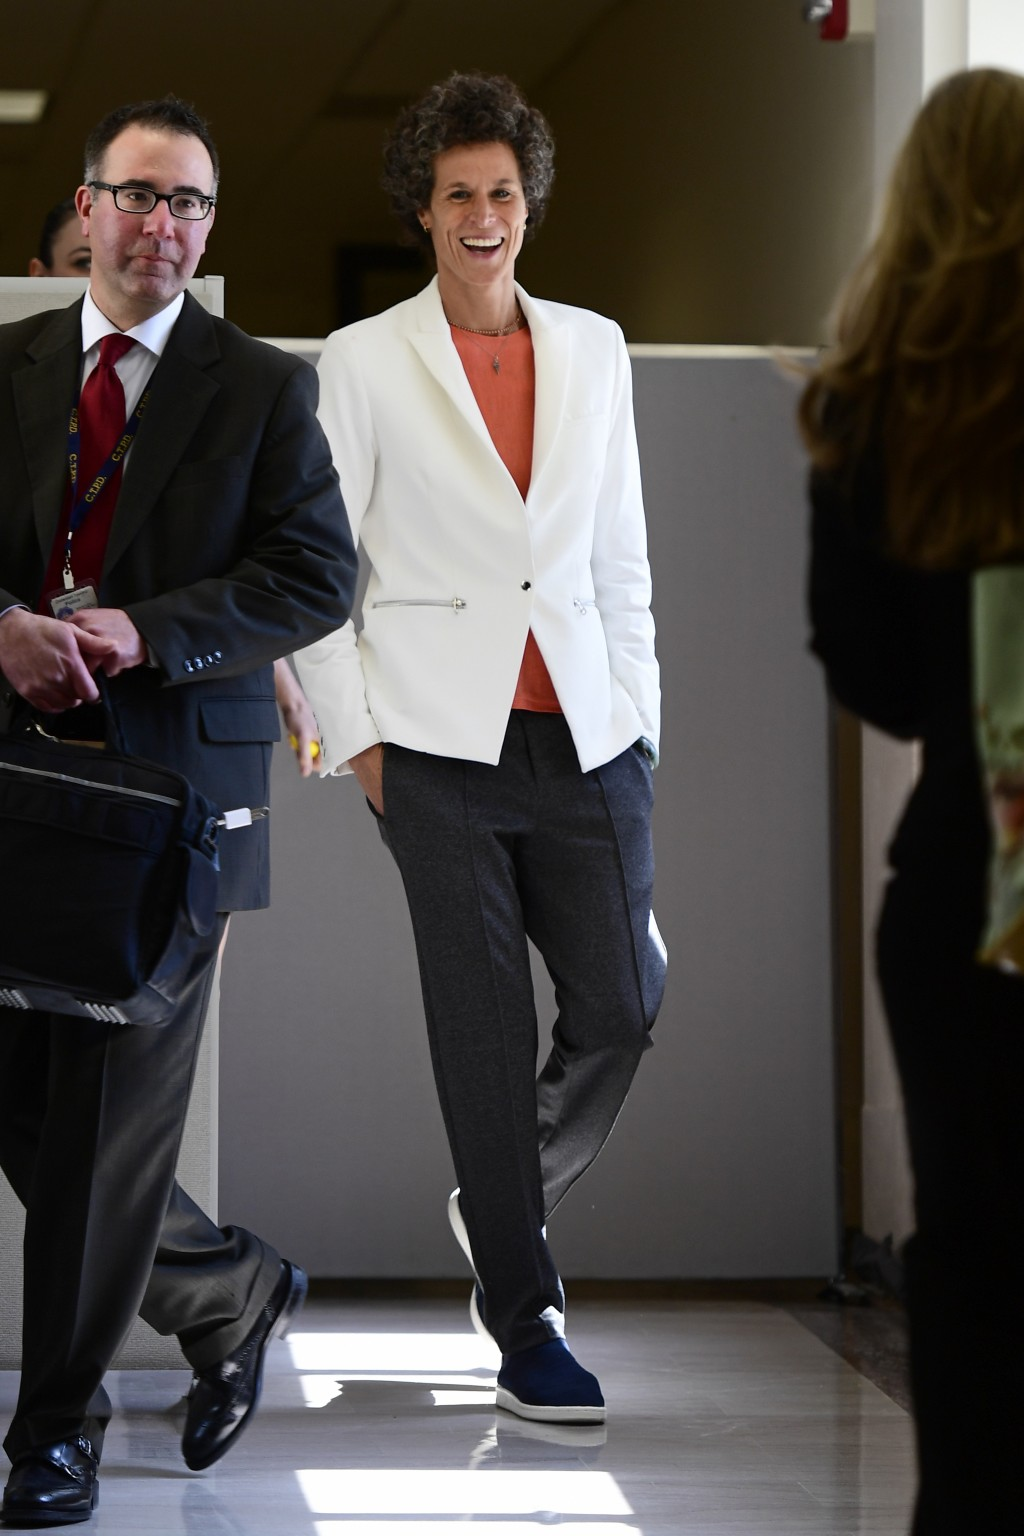 Andrea Constand, chief accuser in the Bill Cosby trial, returns from lunch, spotting a friend, during the Bill Cosby sexual assault trial at the Montg